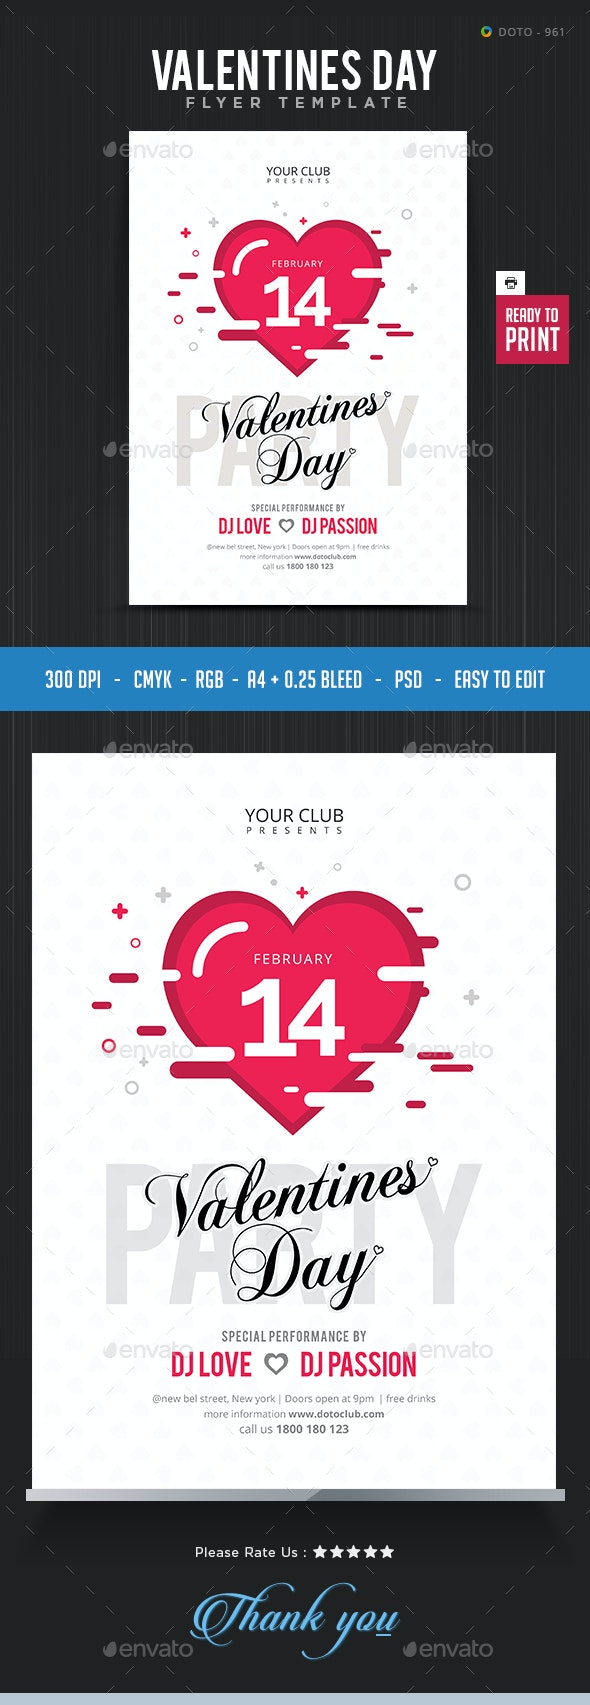 Valentines Day Flyer Template - Flyers Print Templates